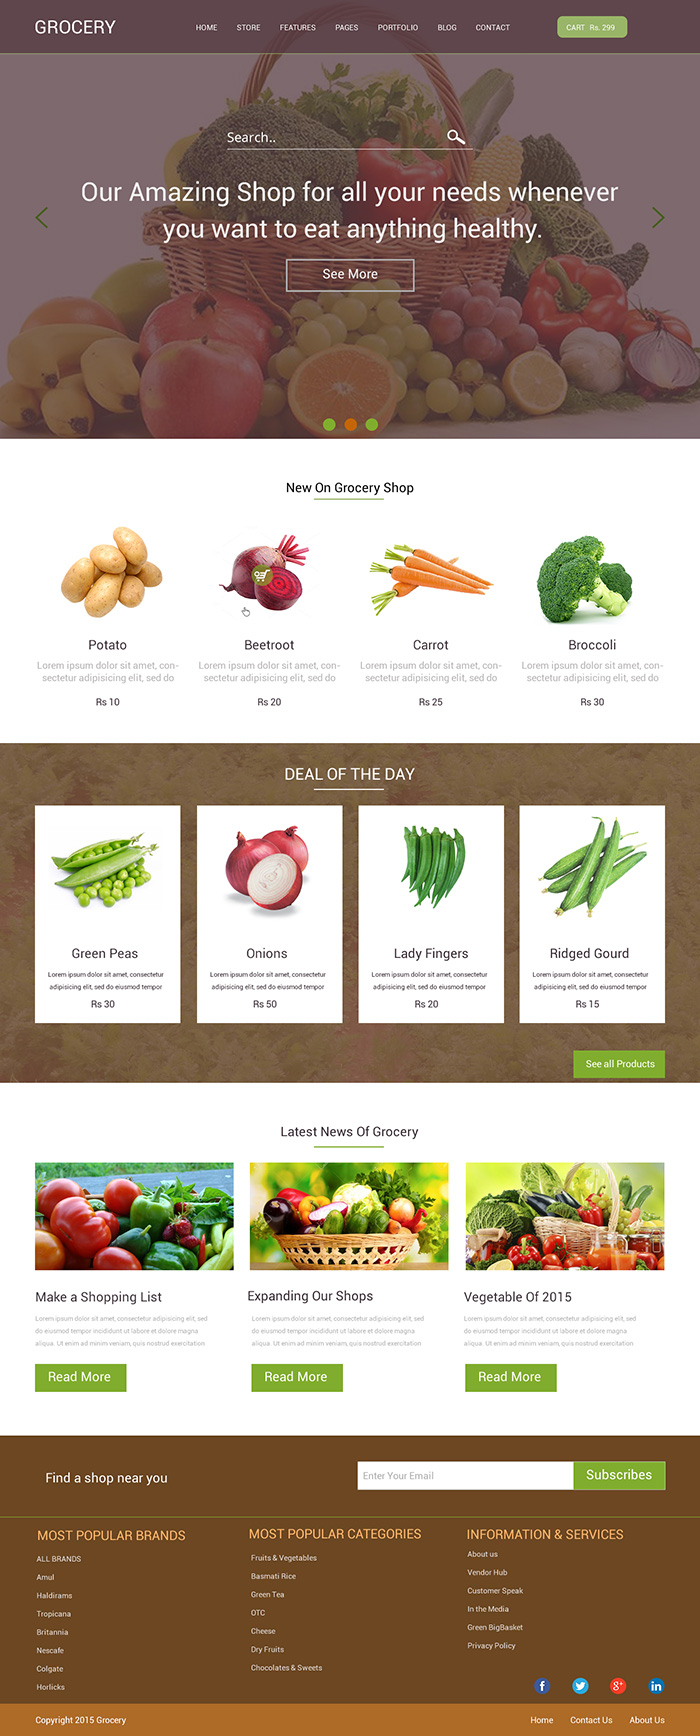 Grocery landing page